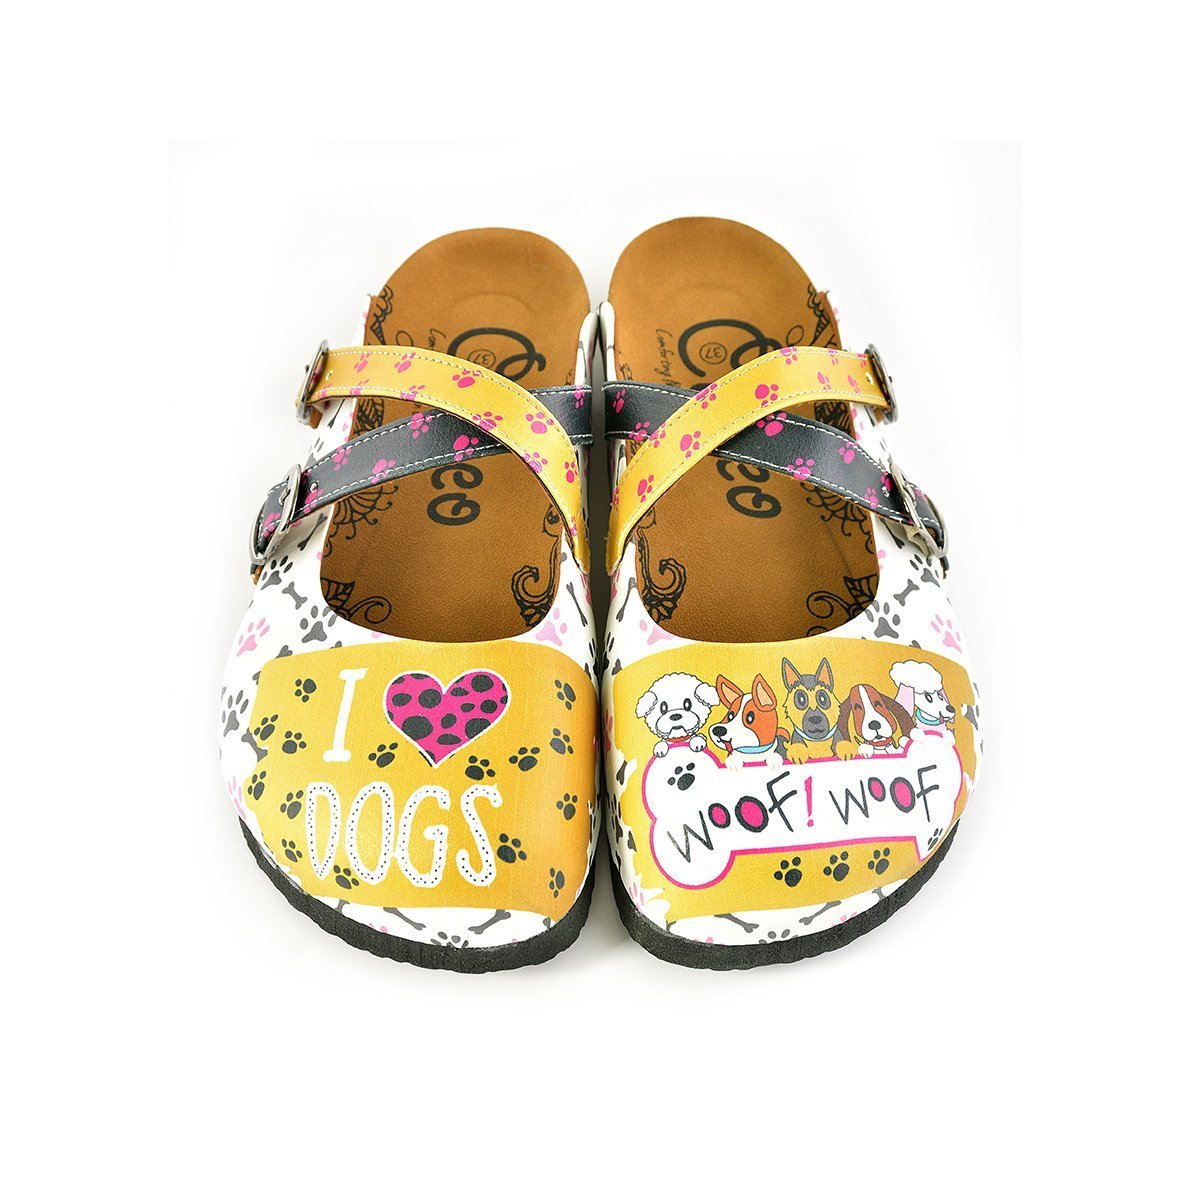 Yellow and Black Polkadot, Paw Pattern and I Love You, Cute Dogs Patterned Clogs - WCAL149